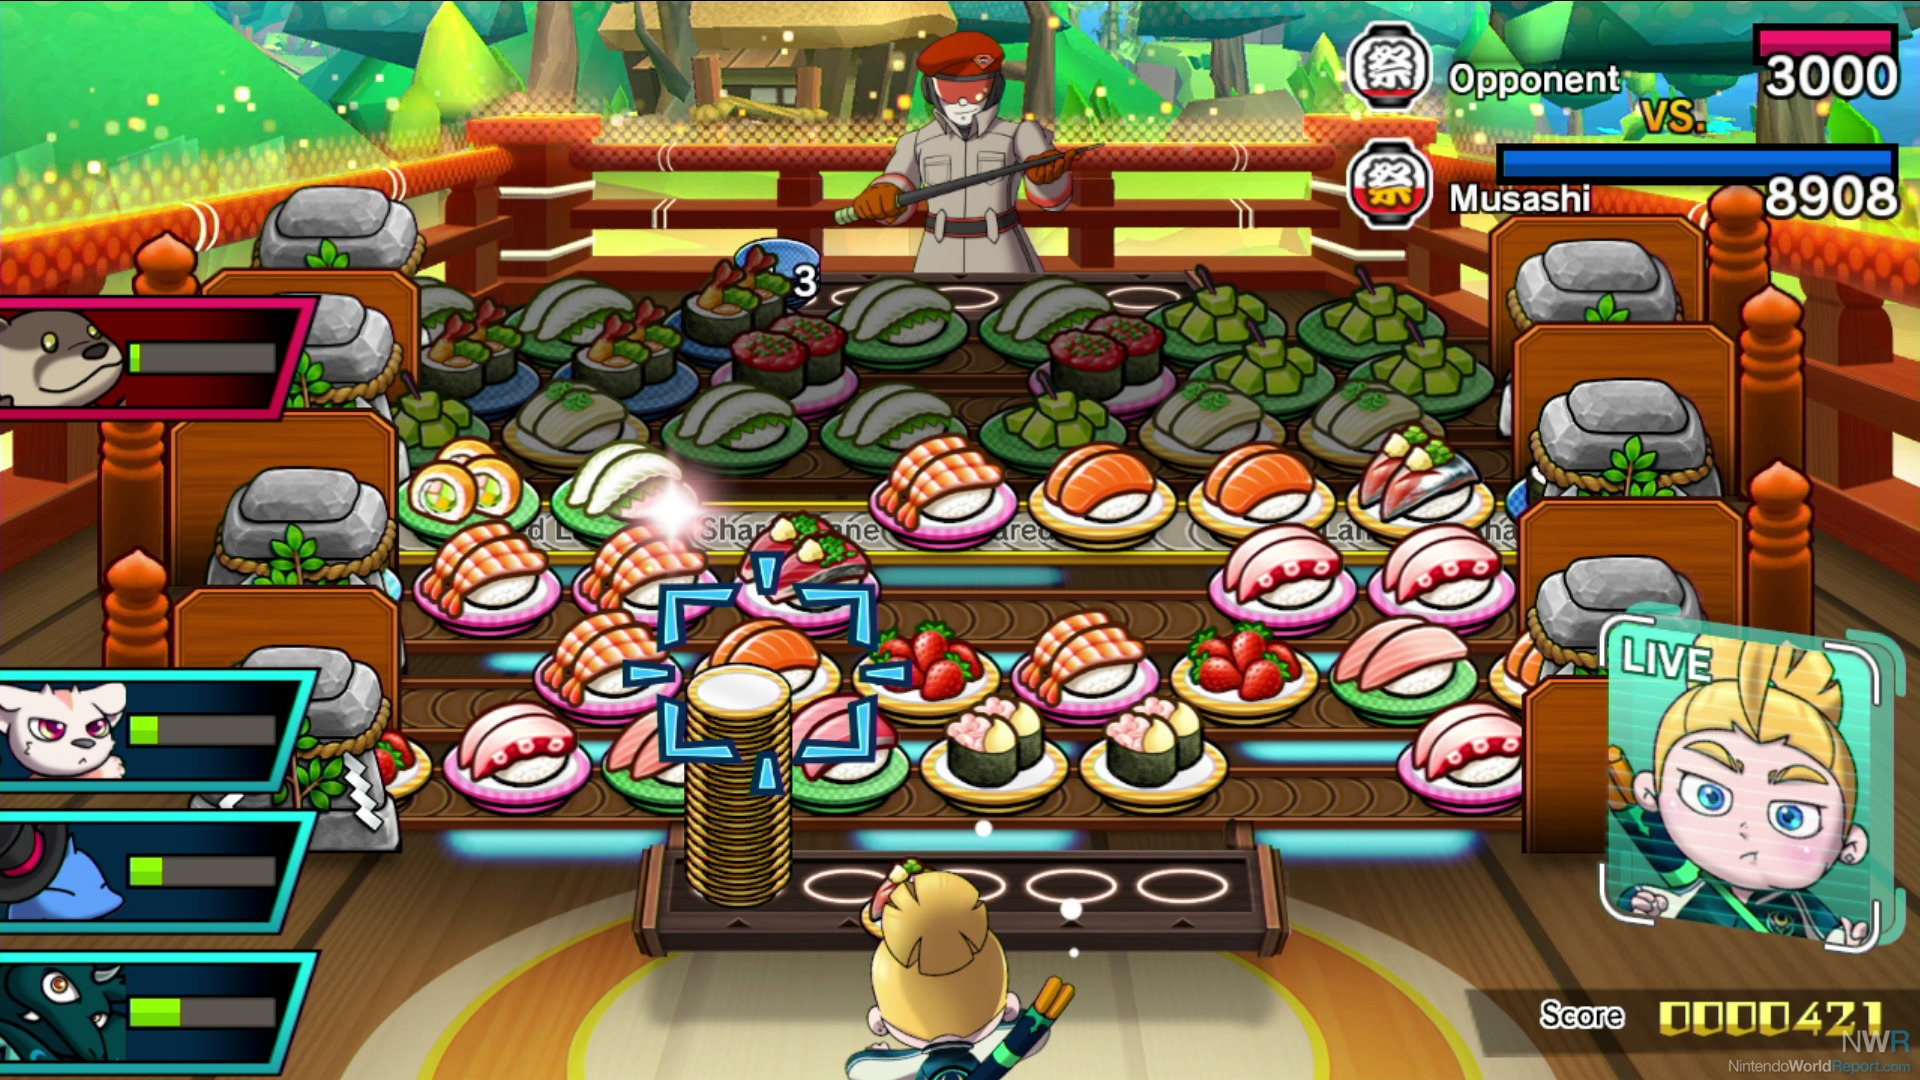 Three Way Switch Animation Sushi Striker The Of Sushido Pax East 2018 Preview Screen Shows Seven Conveyor Belts That Alternate In Direction Are On Your Side Opponents With One Shared Middle